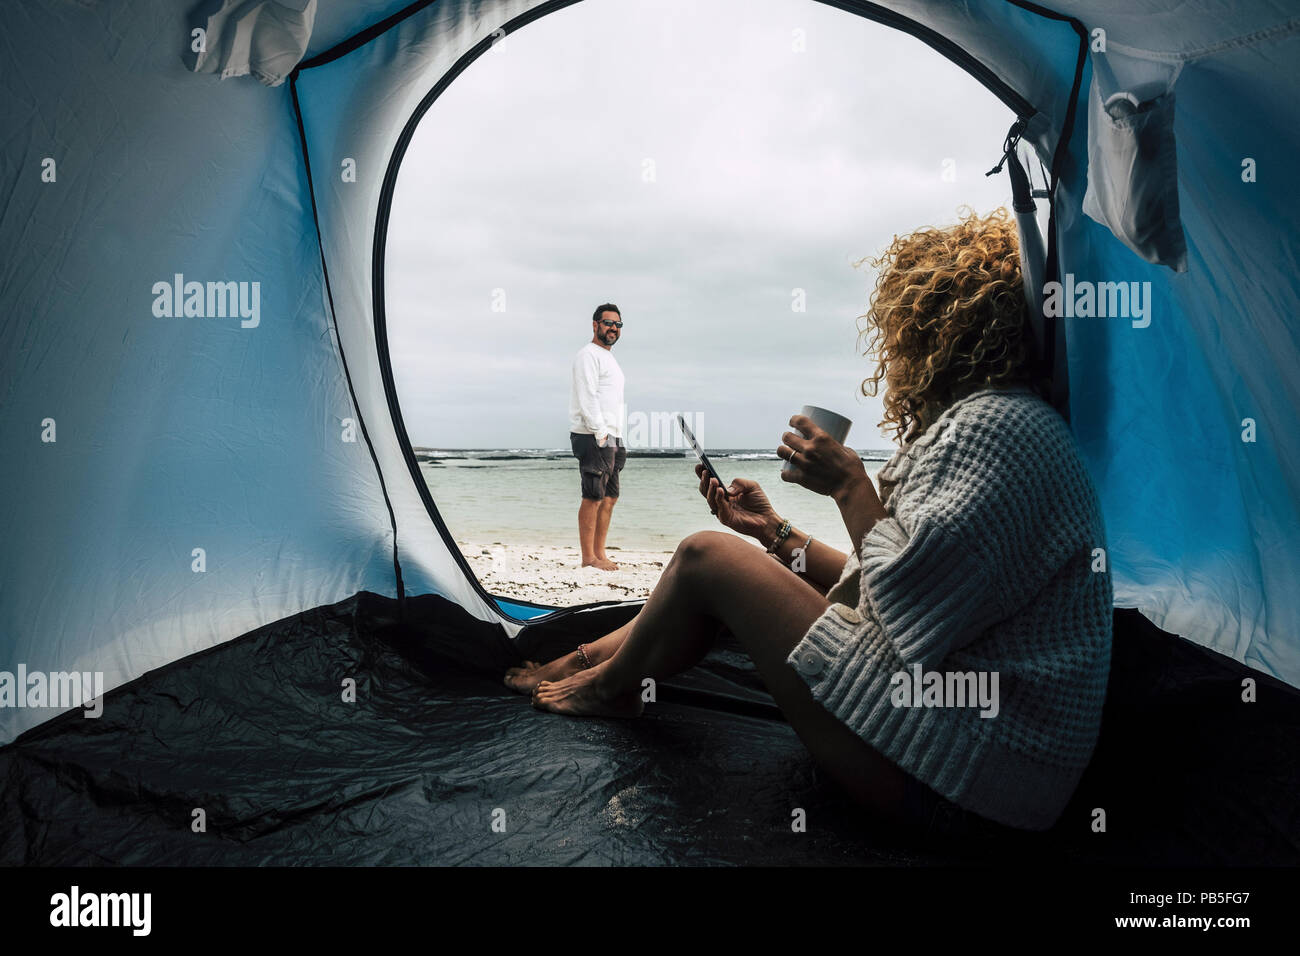 couple of caucasian traveler people camping on the beach near the ocean waves, paradise vacation alternative lifestyle with tiny house and enjoying th Stock Photo